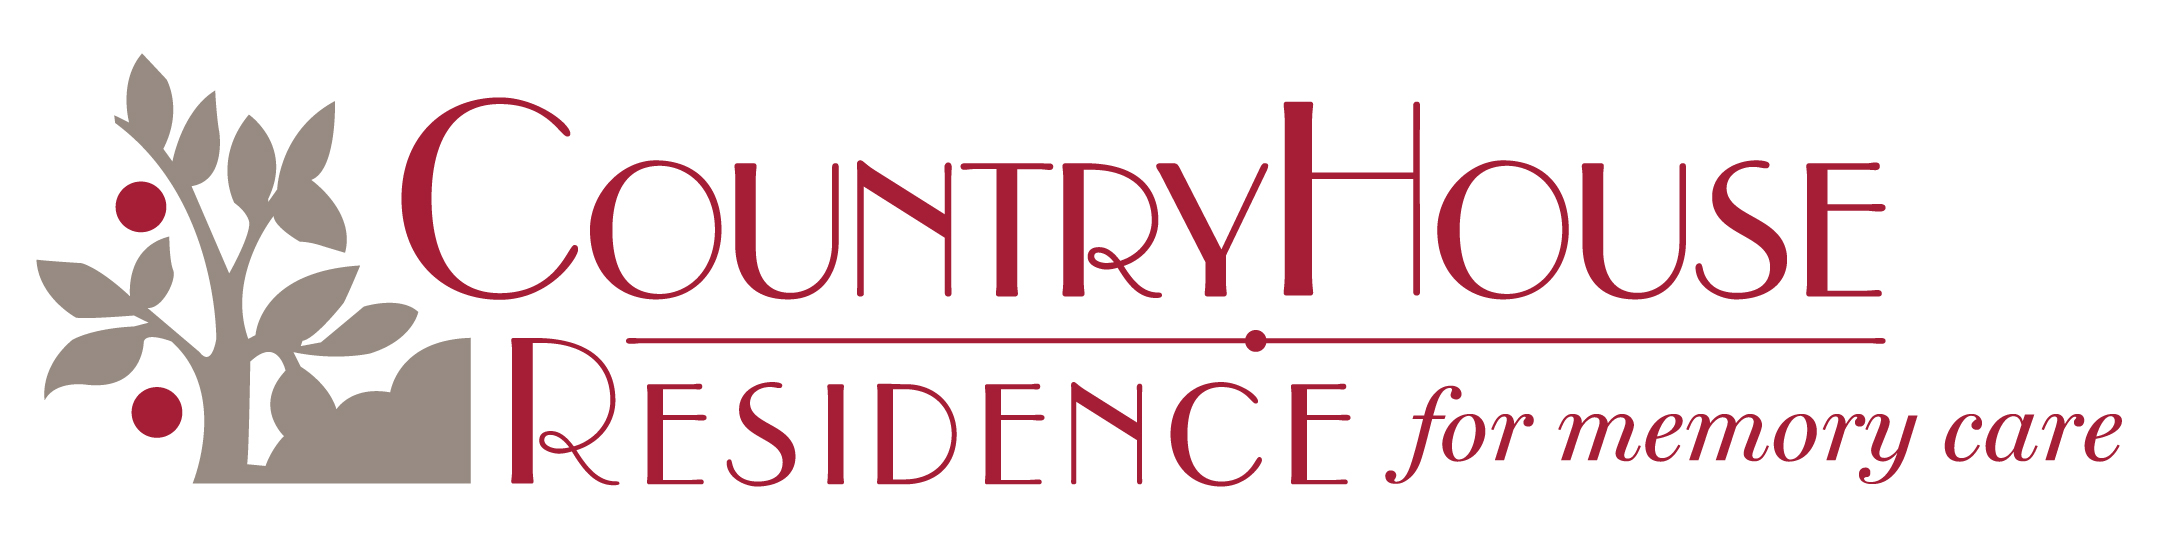 Country House logo